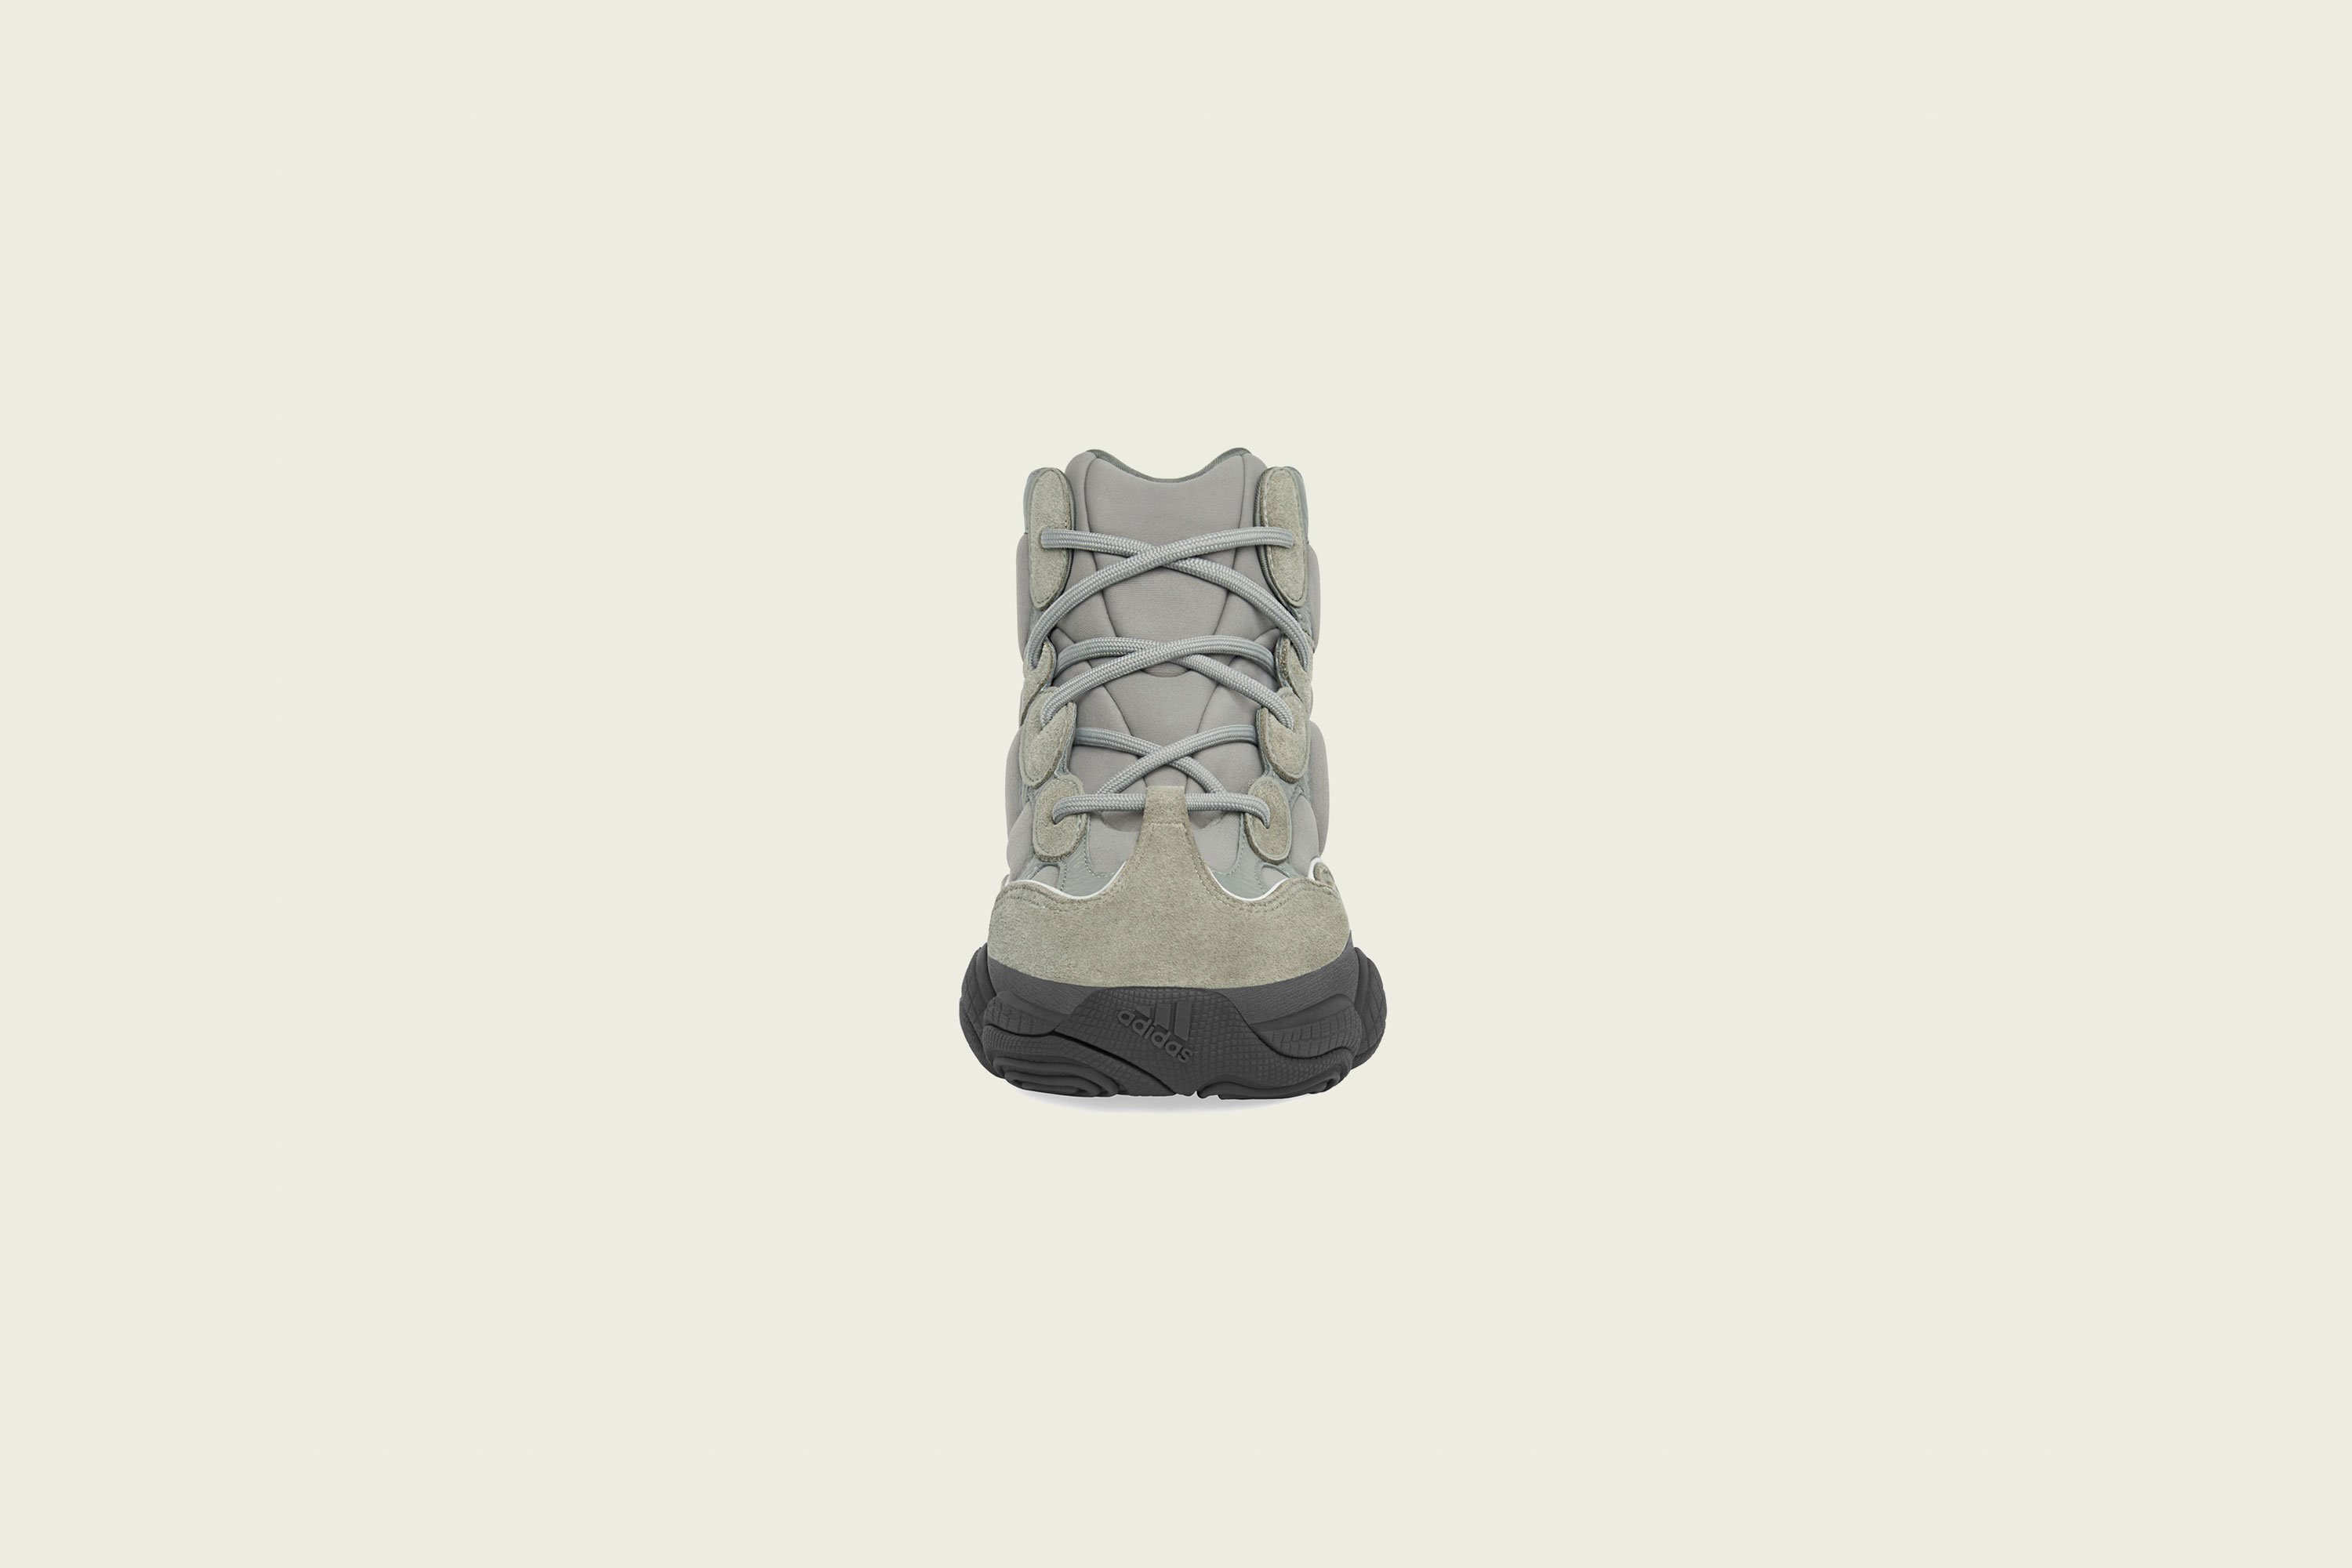 Up There Store - adidas Originals Kanye West Yeezy 500 High - Mist Slate